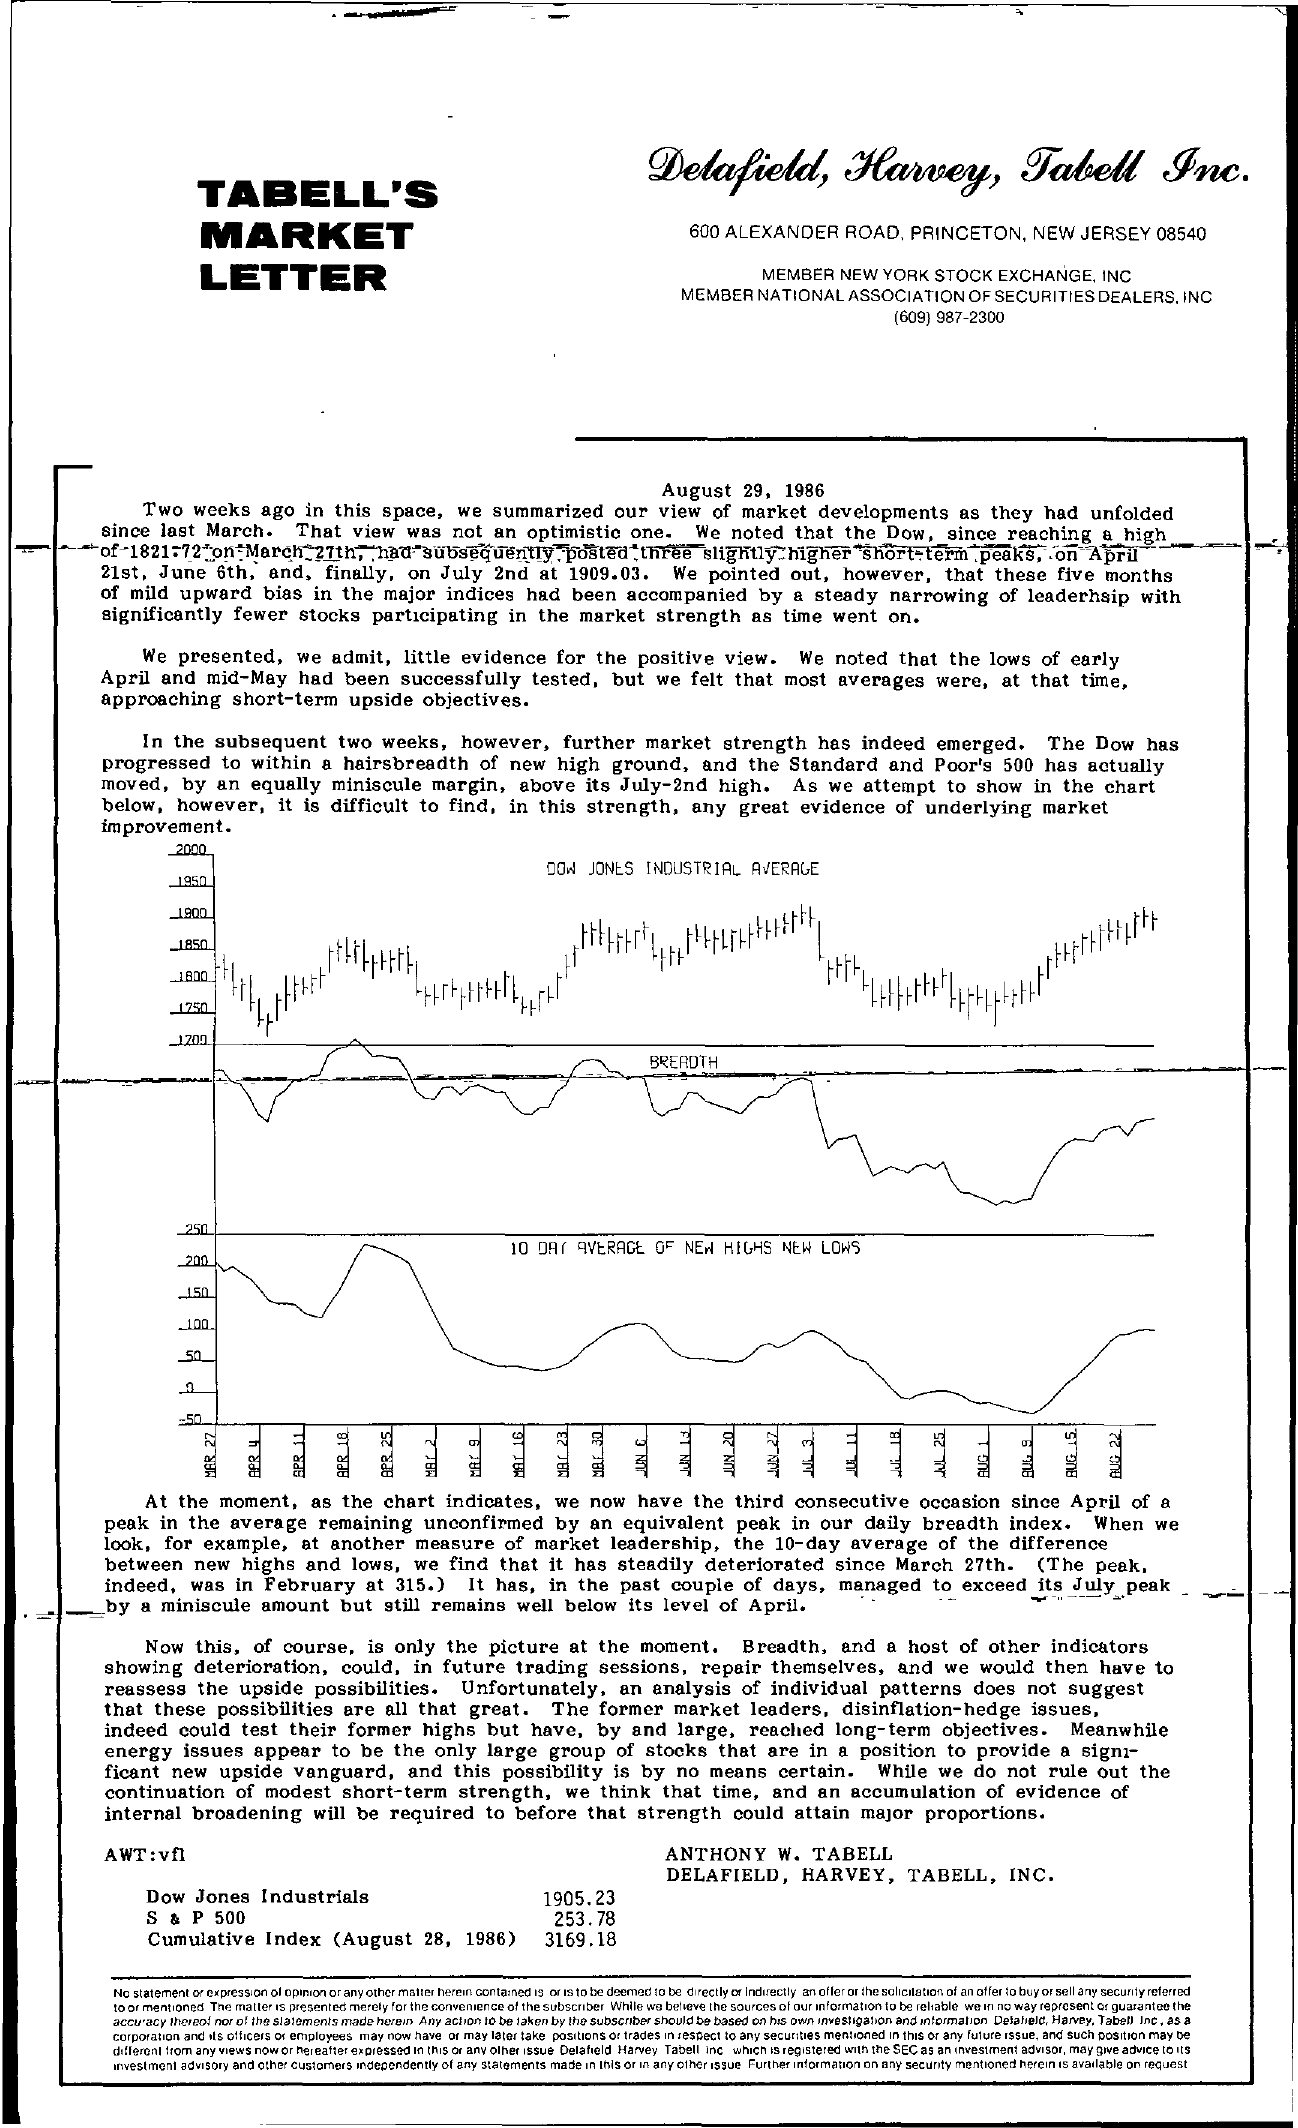 Tabell's Market Letter - August 29, 1986